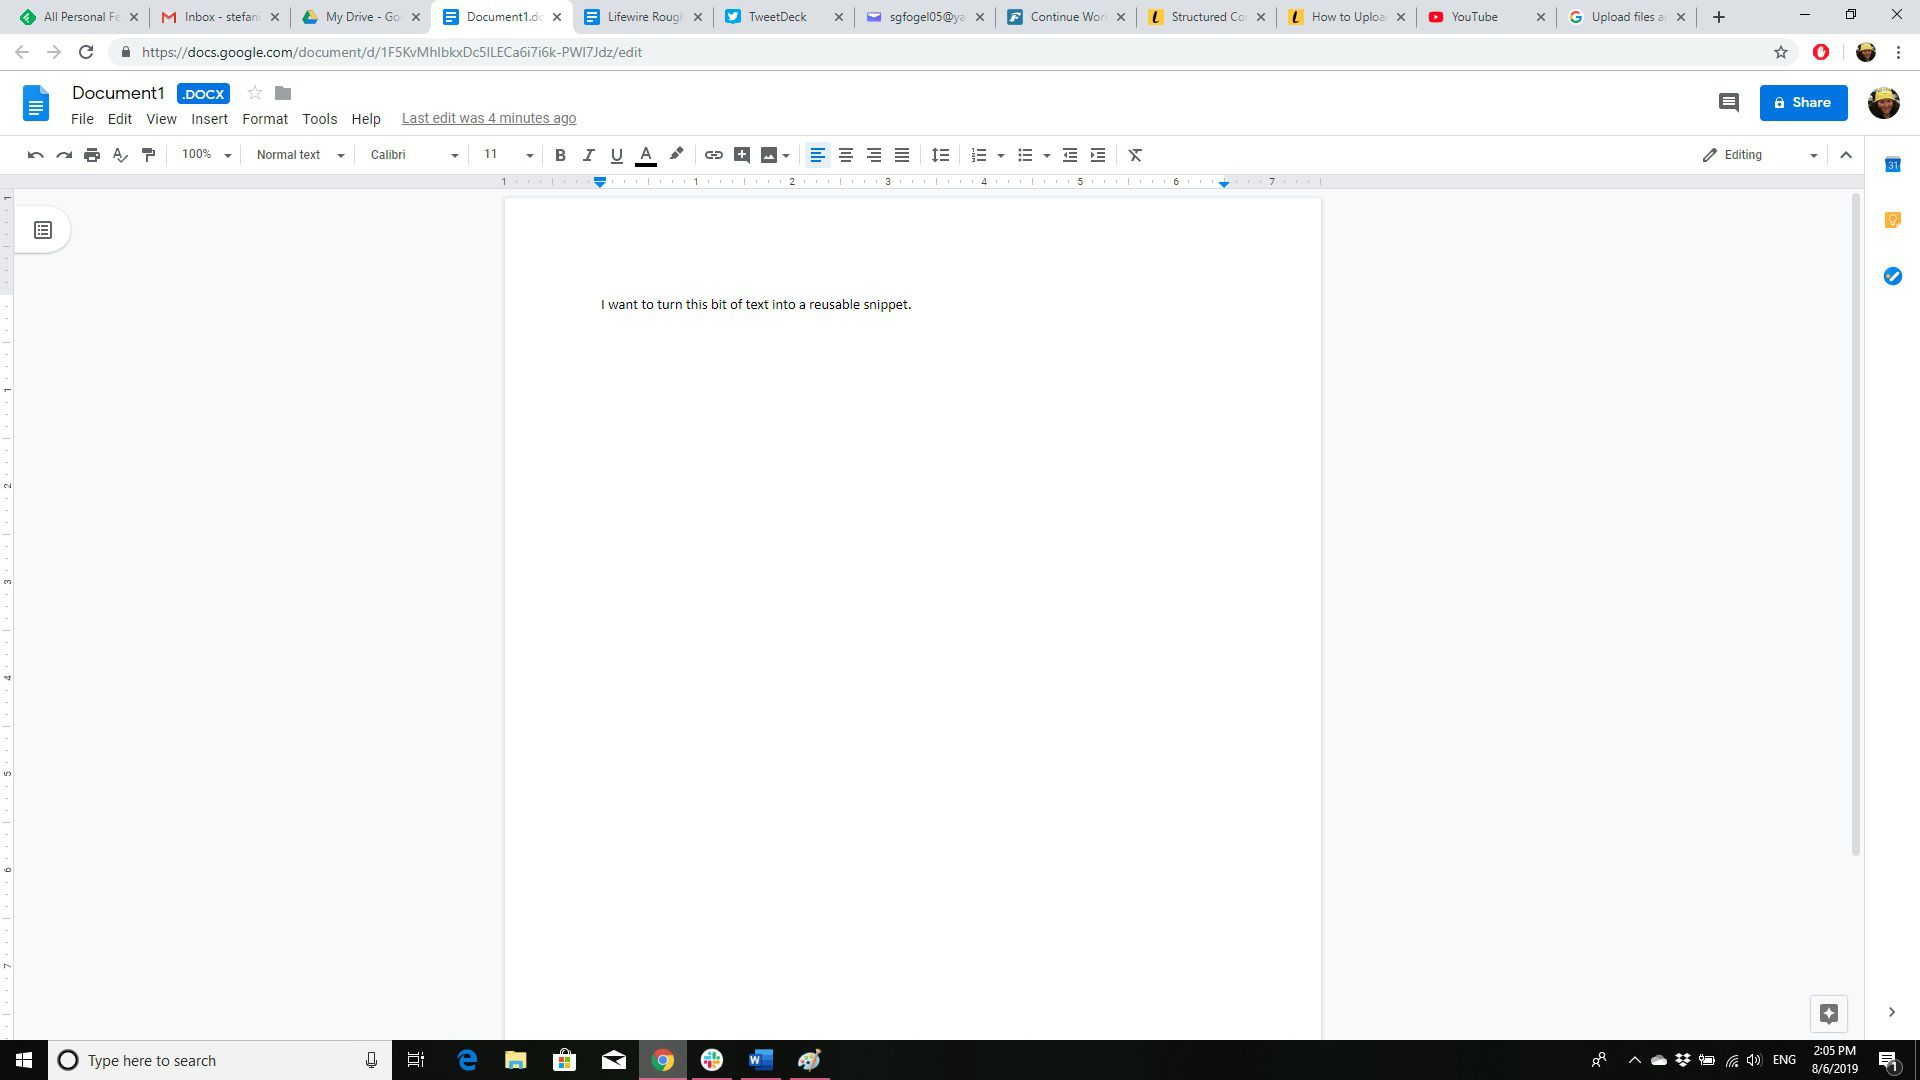 How to Upload Word Documents to Google Docs